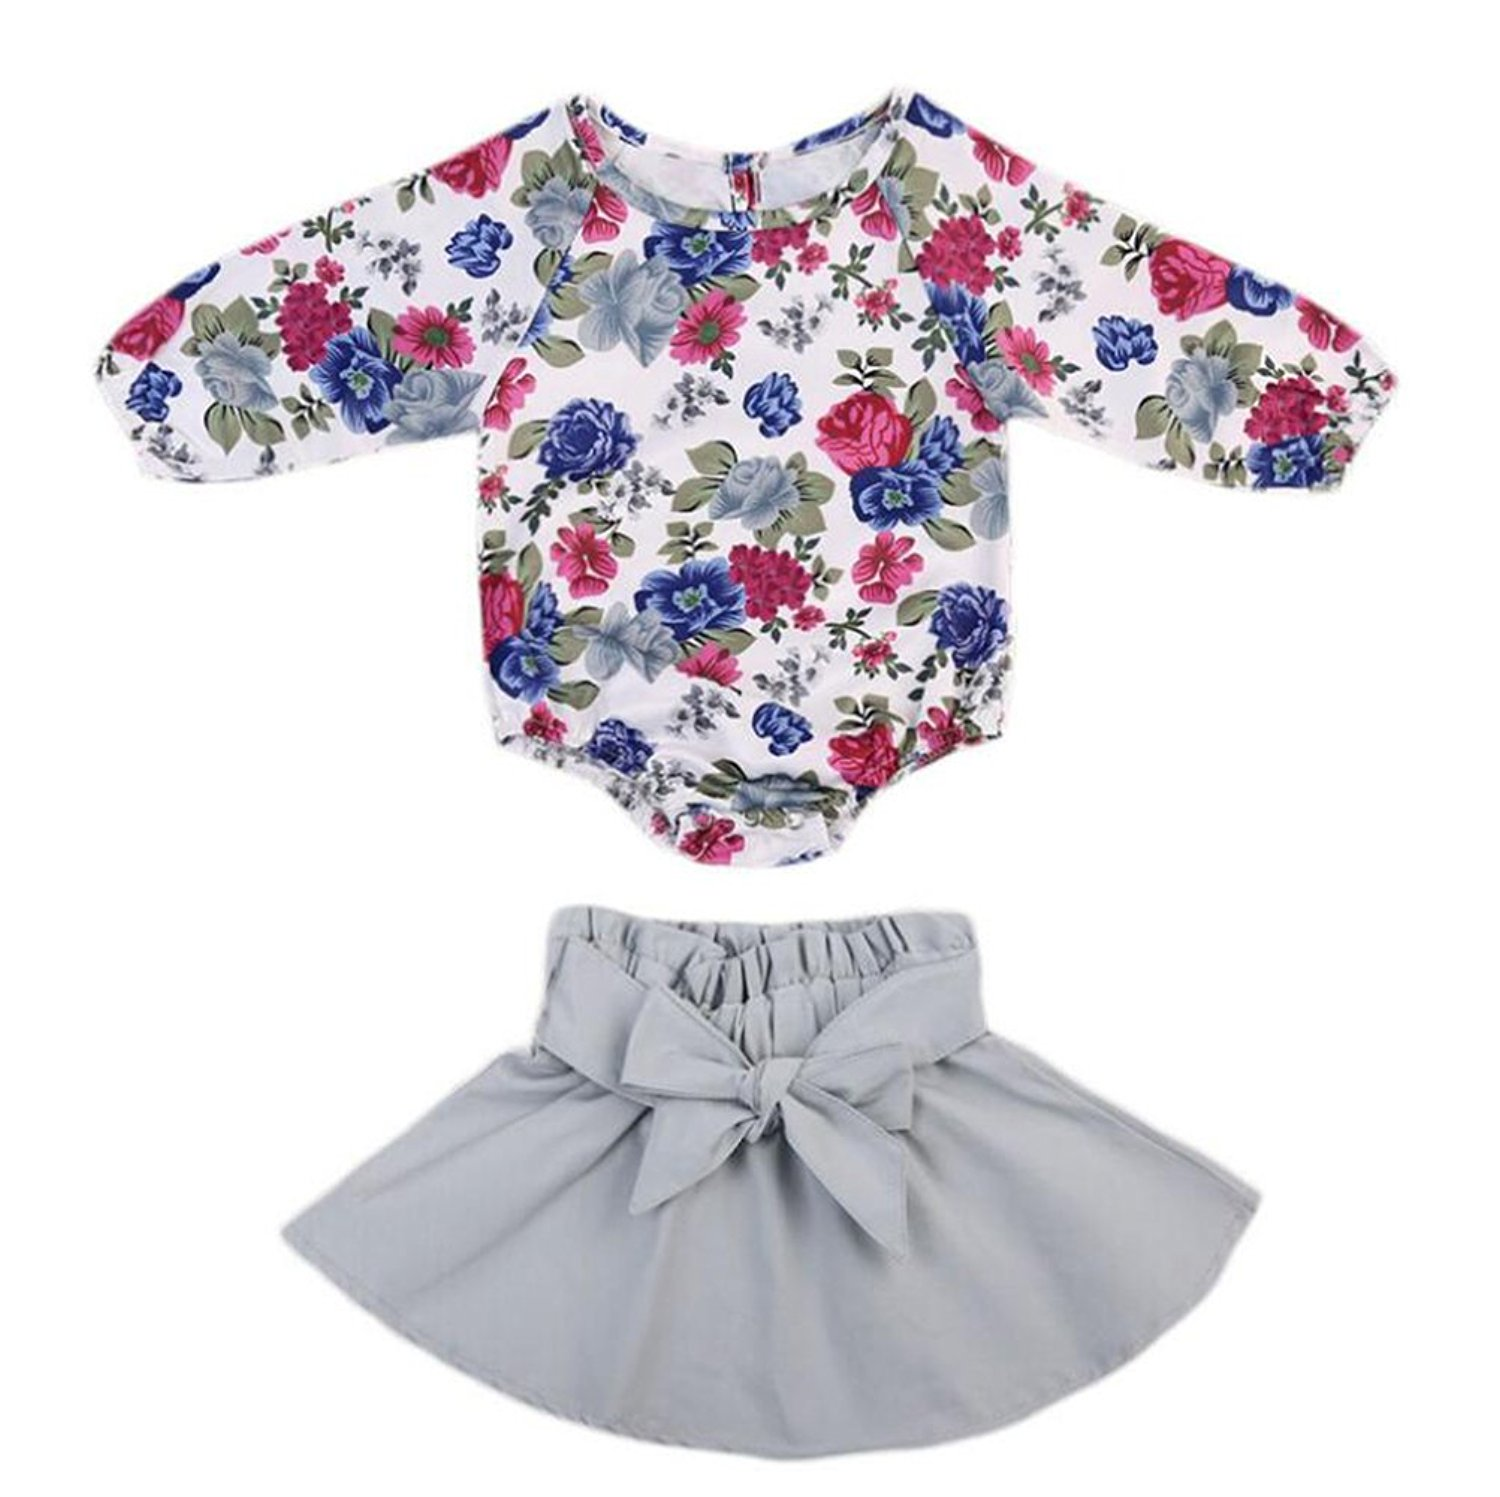 f9a338366 Get Quotations · UNIQUEONE Little Girls Long Sleeve Floral Print Romper Top  Bowknot Skirt Sets Outfit